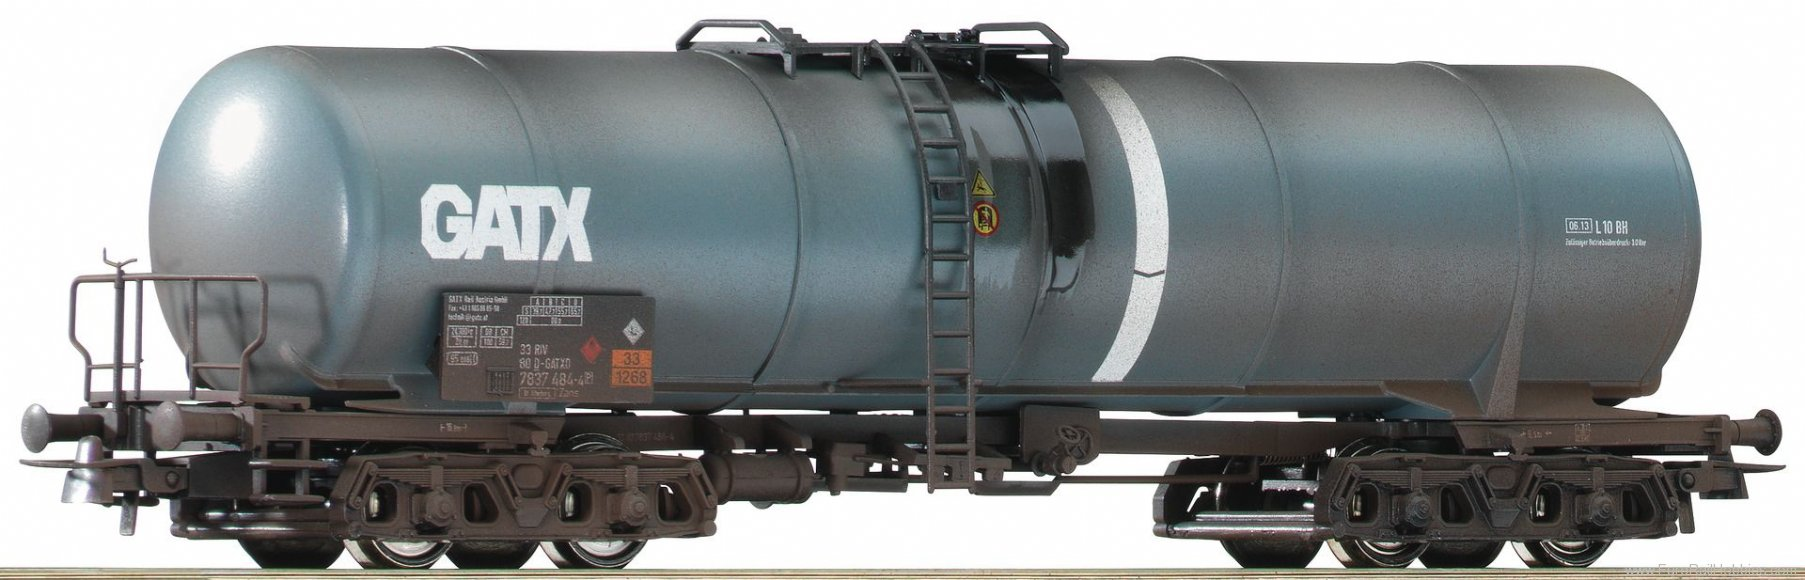 Roco 75976 33807837 127-9, tank wagon weathered, GATX